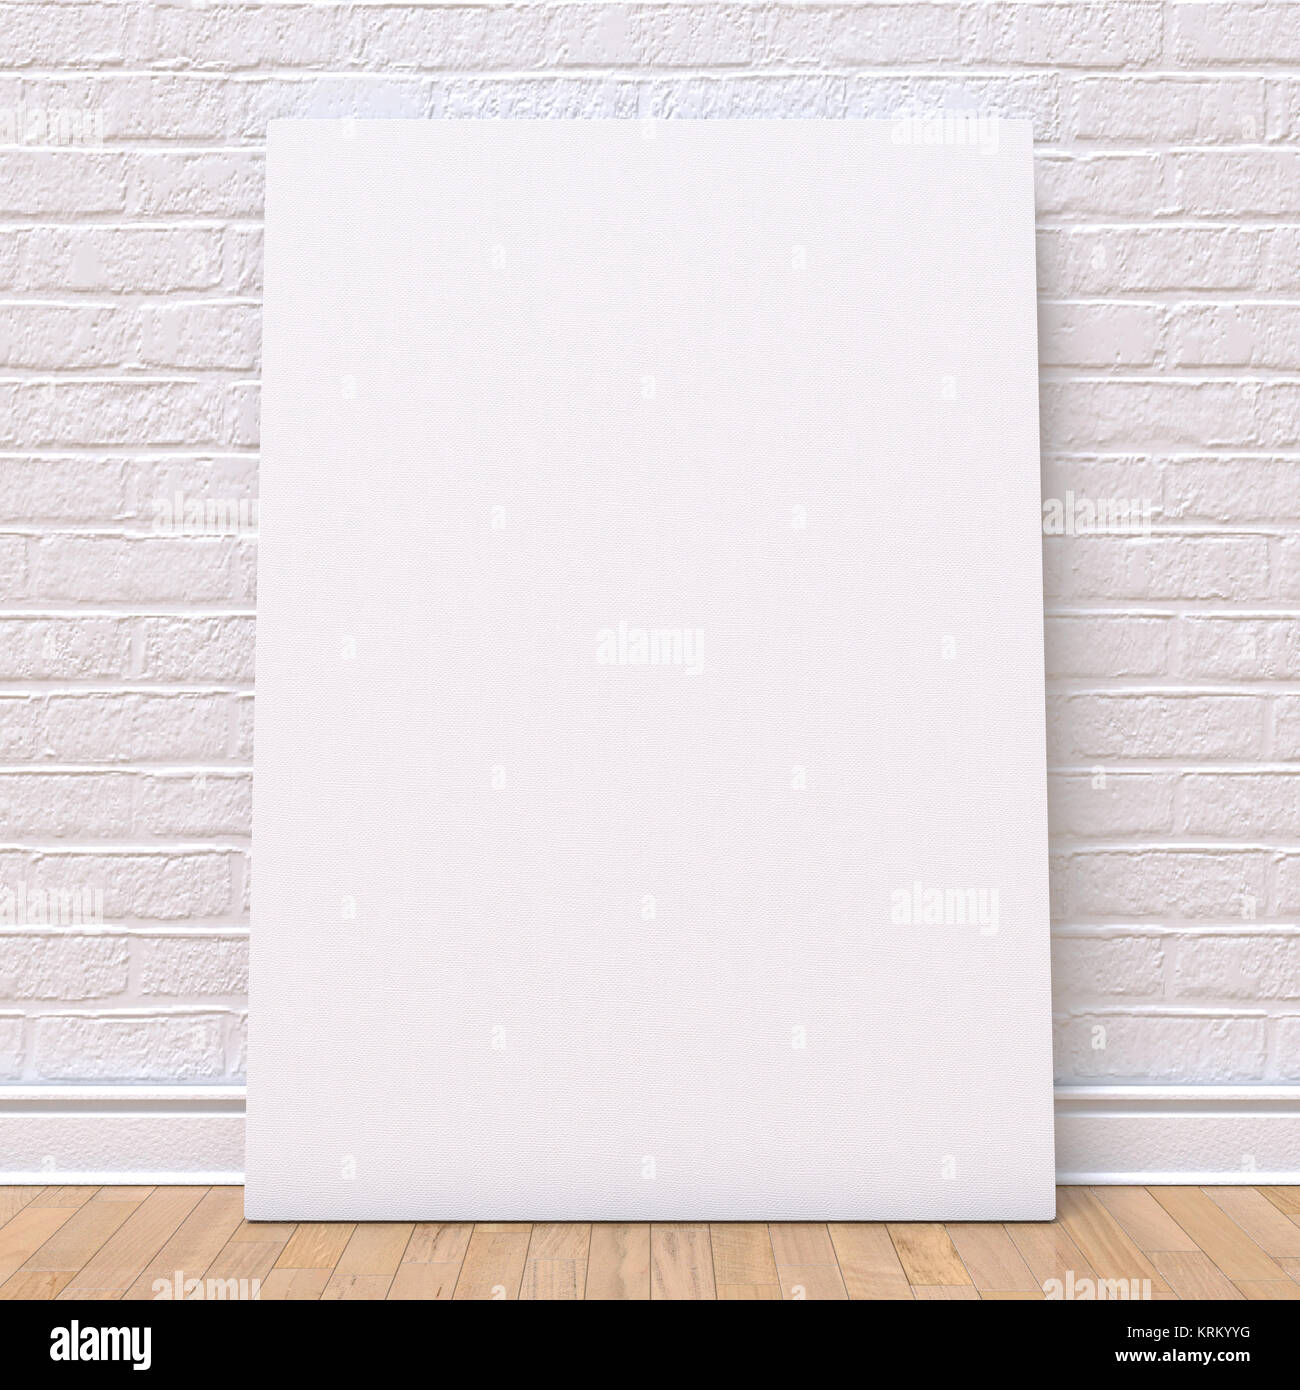 Mock up canvas frame, floor and wall. 3D - Stock Image